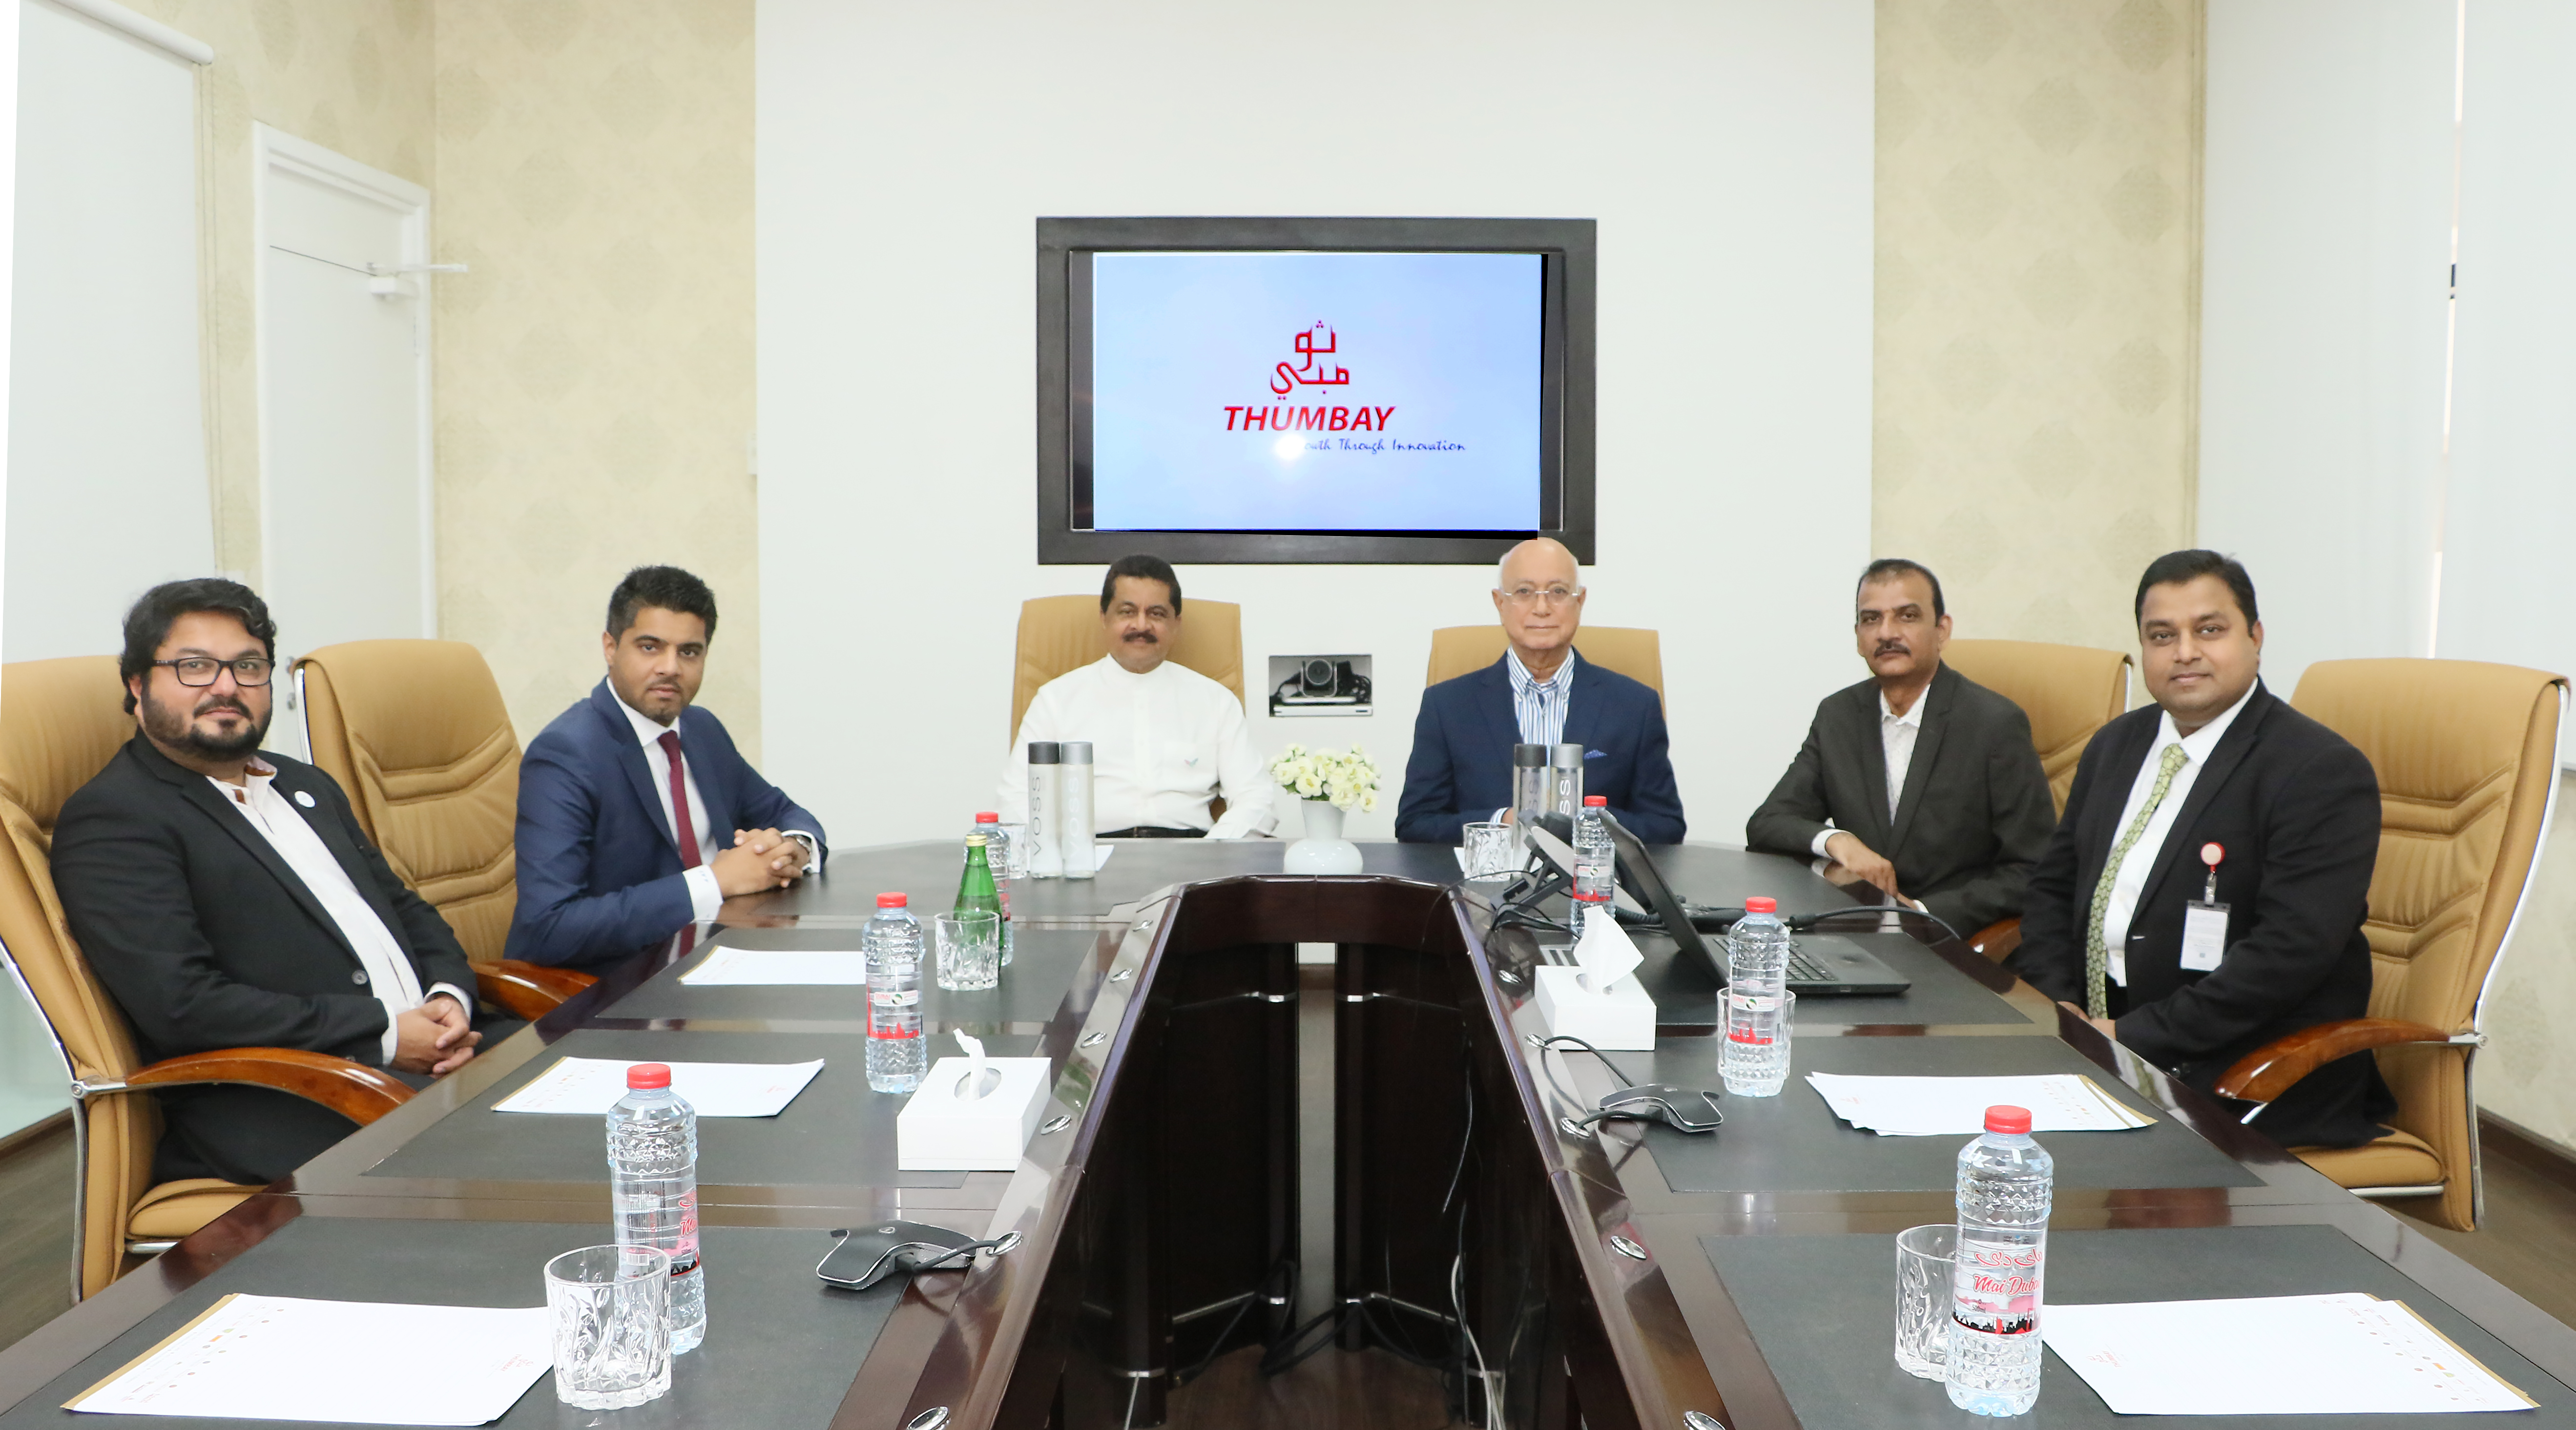 Medical Education, Healthcare & Research Activities of Thumbay Group Gears-up & Aligns with UAE Government's Precautionary Policies